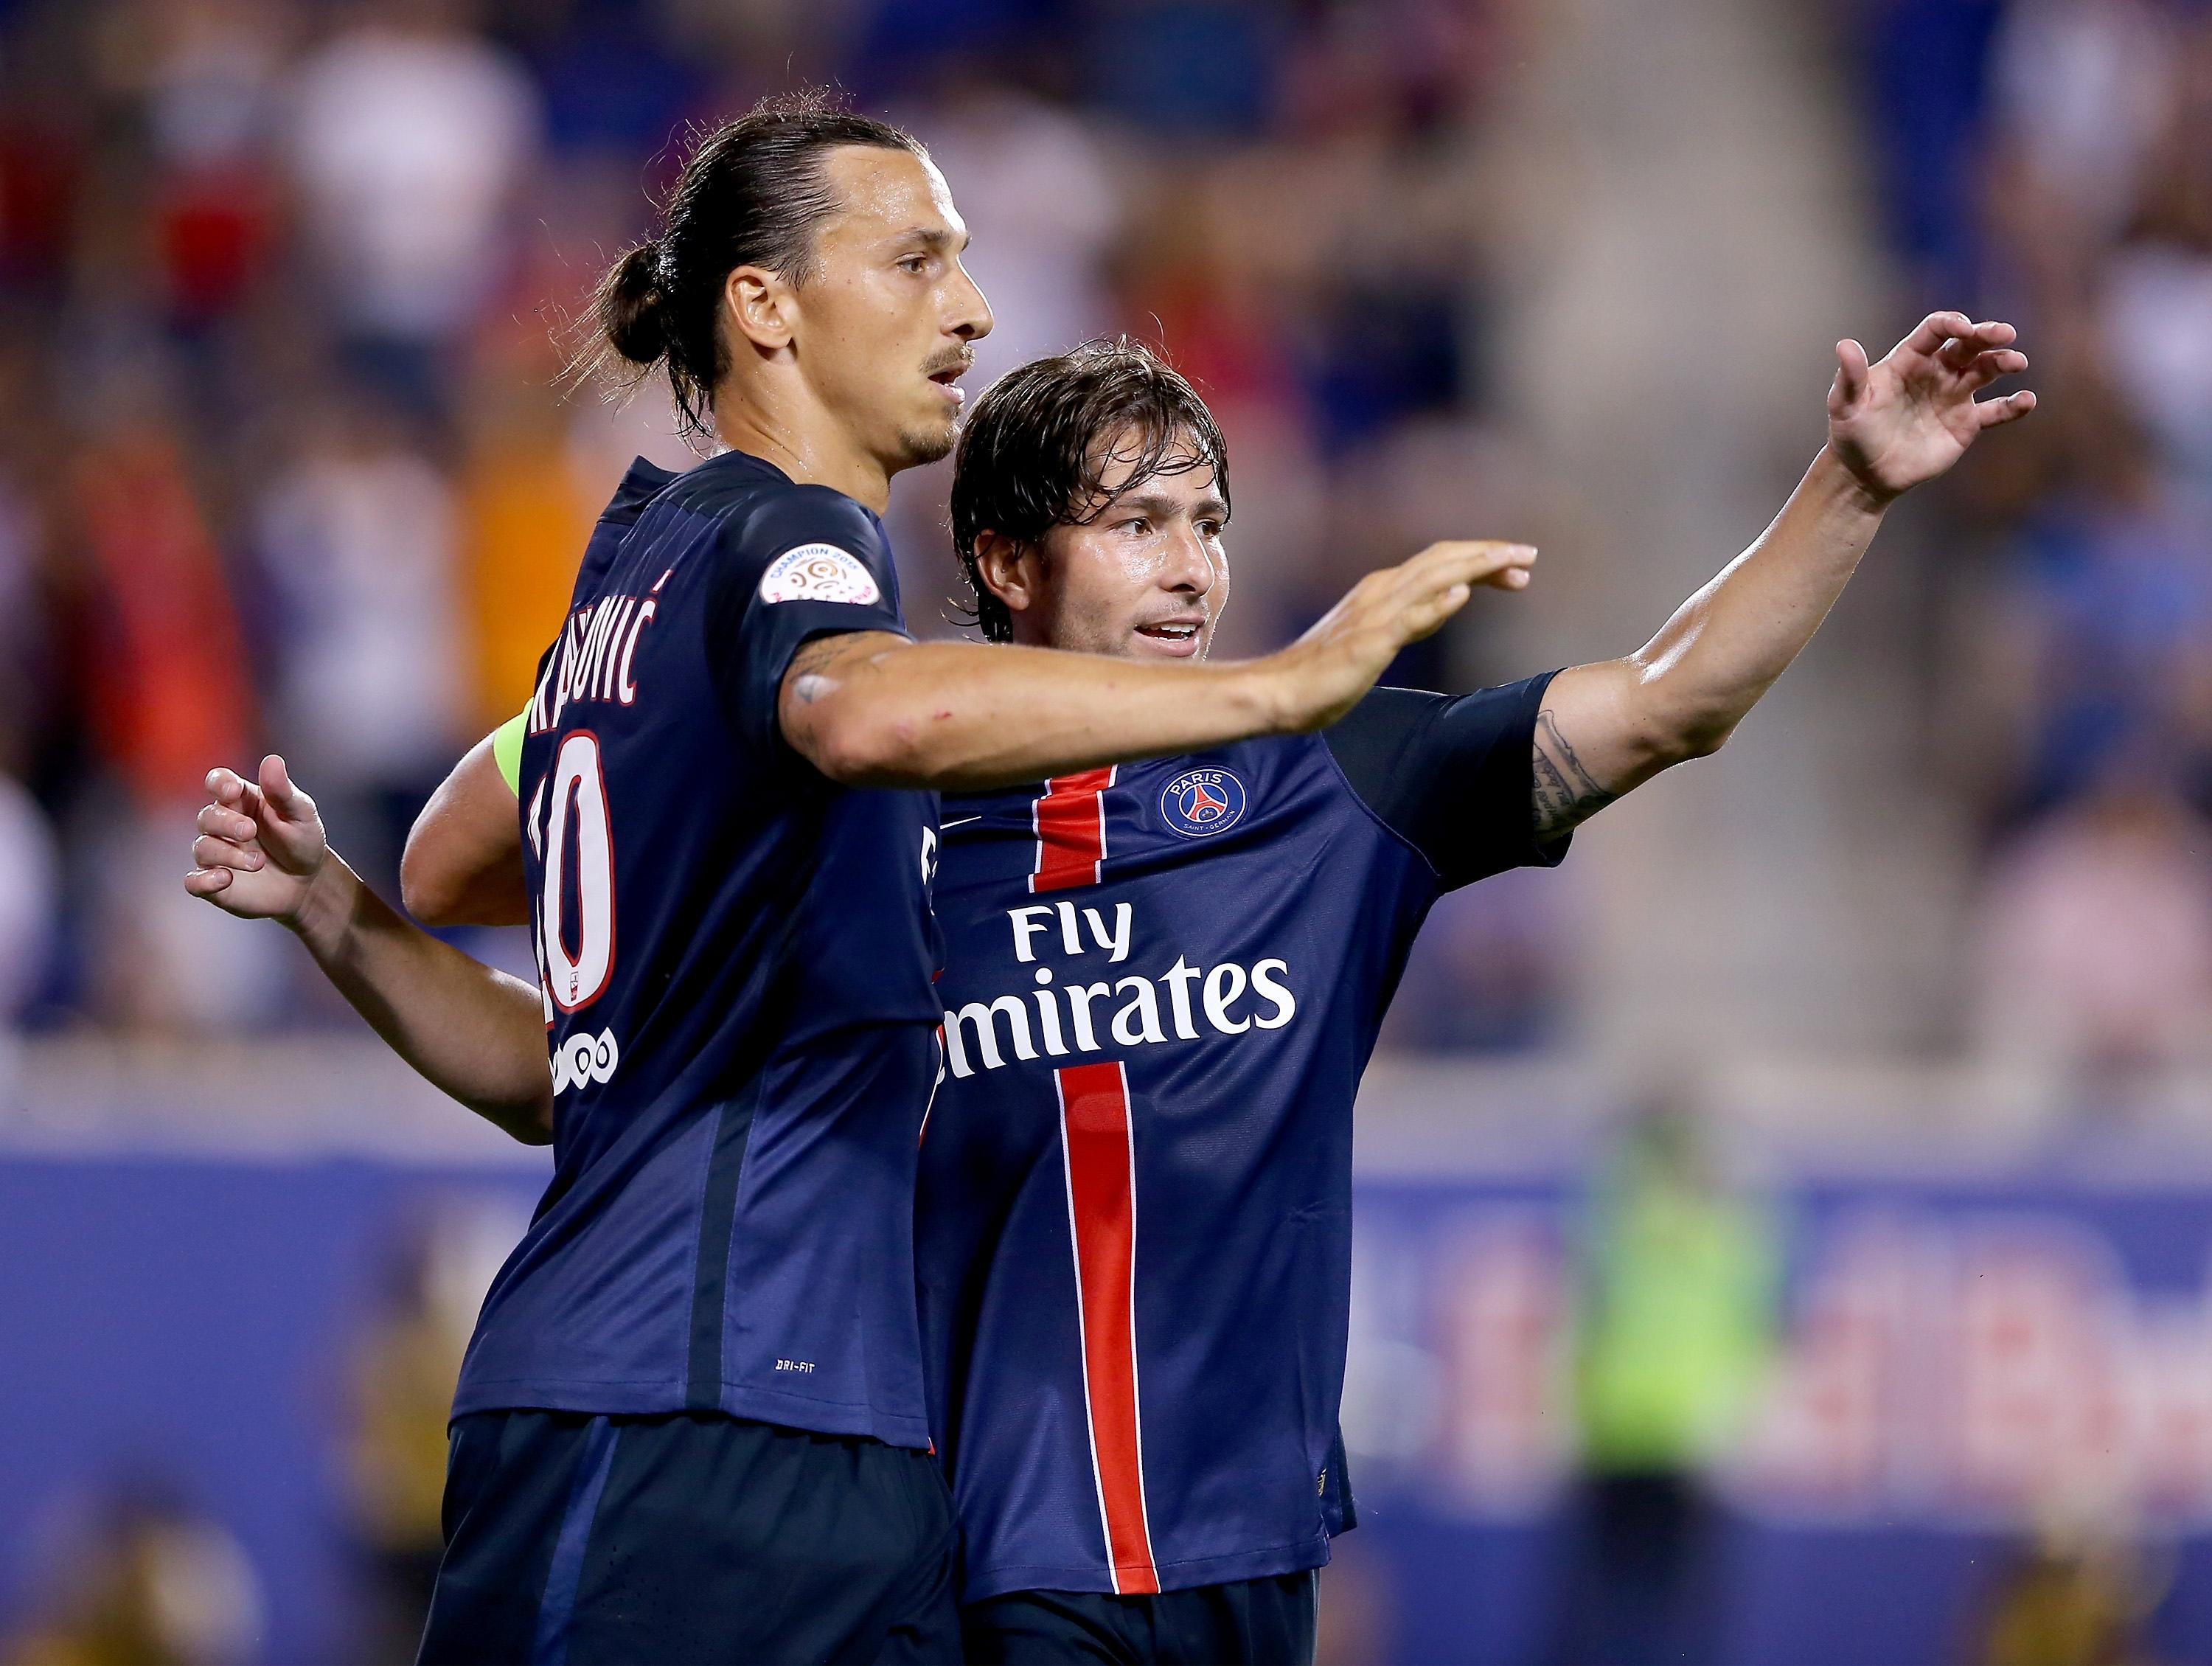 PSG also winning France's popularity contest